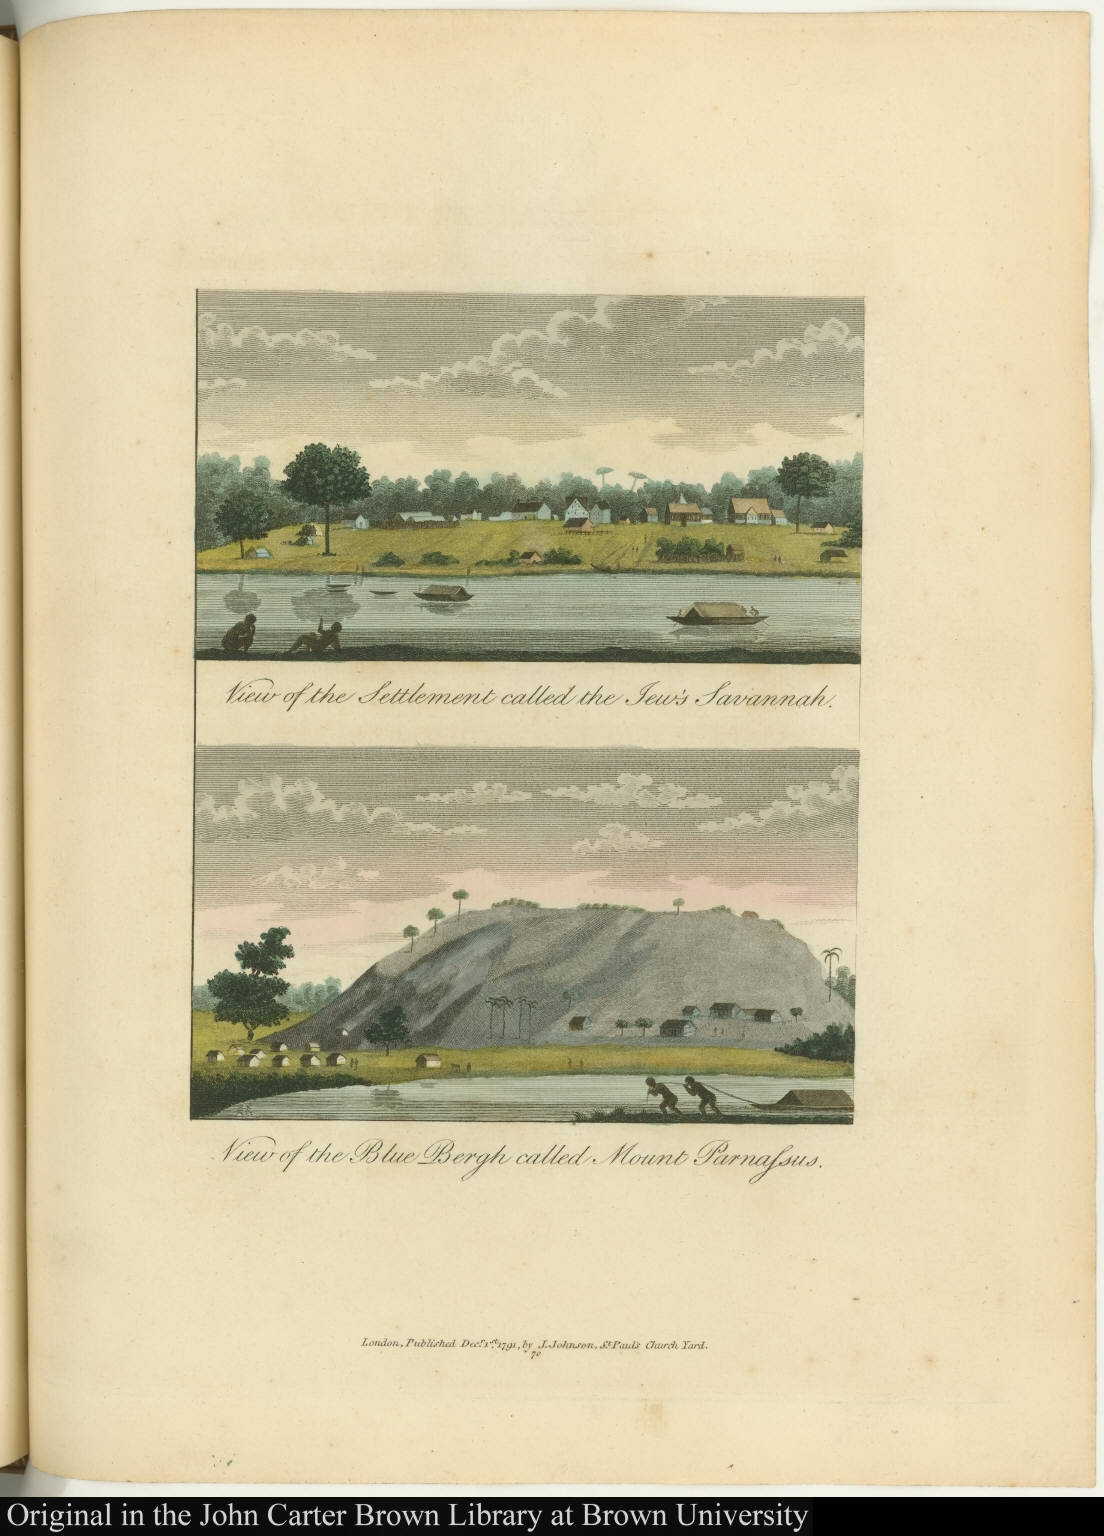 [top] View of the Settlement called the Jew's Savannah. [bottom] View of the Blue Bergh called Mount Parnassus.